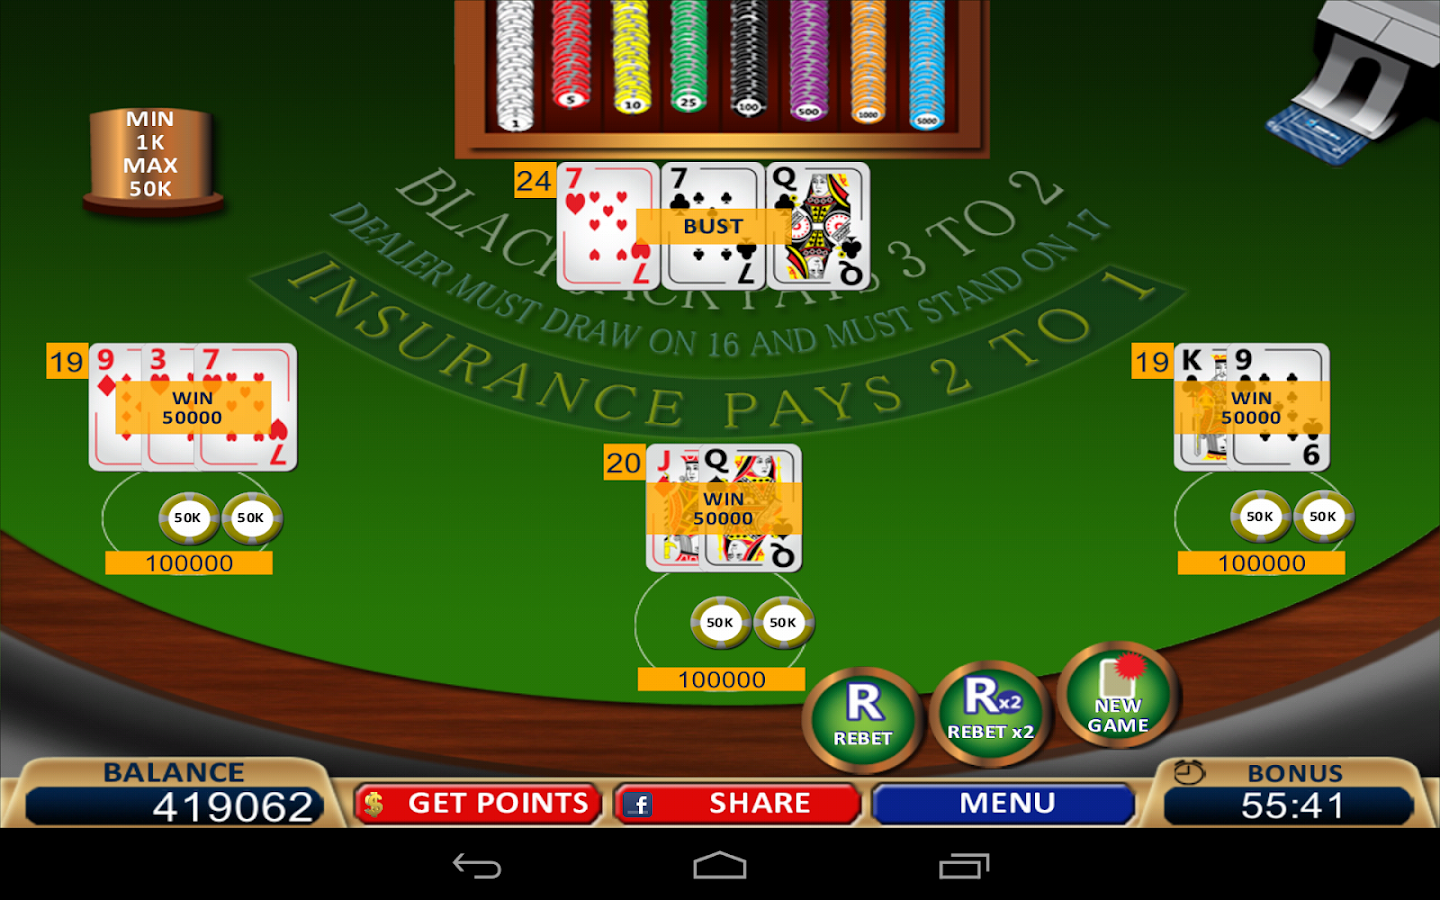 Virtual blackjack table - Blackjack 21 Casino Card Game Screenshot